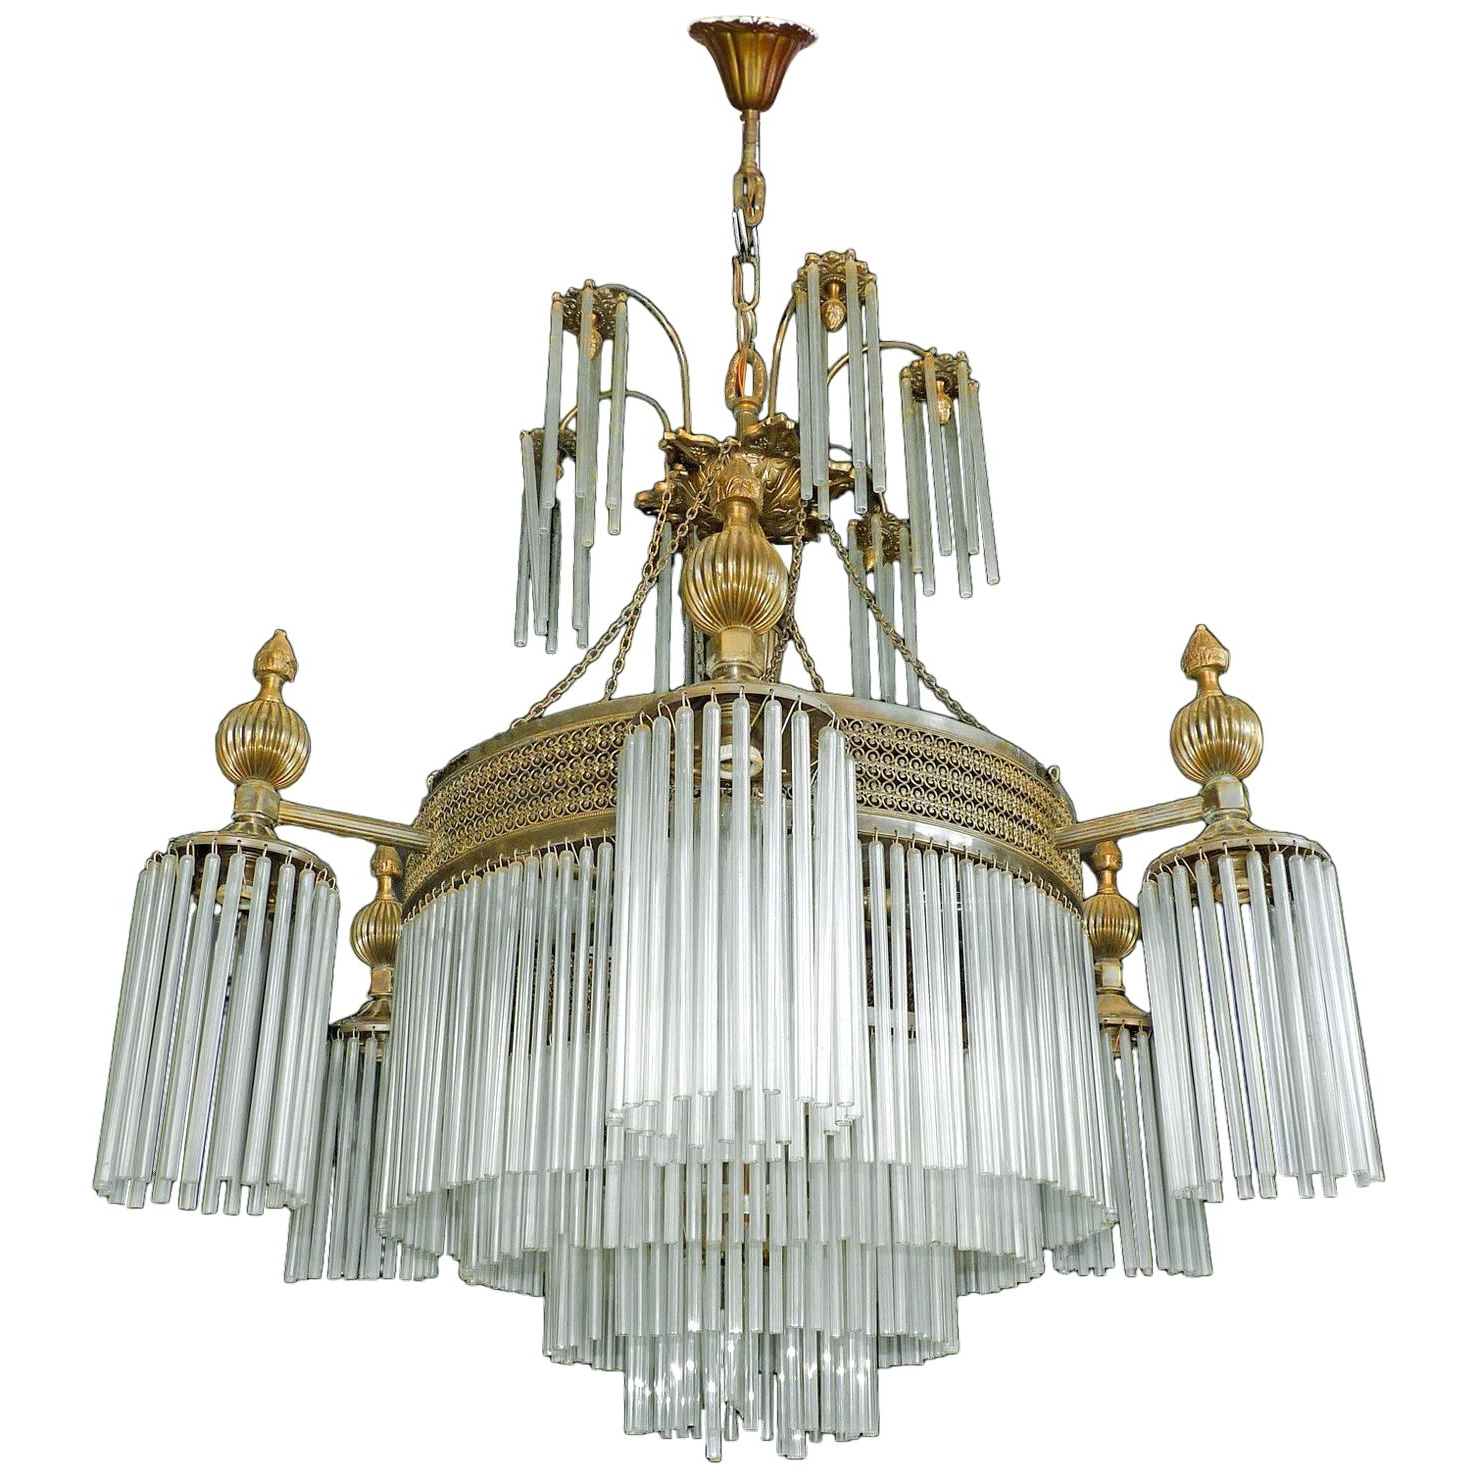 12 Light Chandelier Pertaining To Recent Vroman 12 Light Sputnik Chandeliers (View 1 of 20)